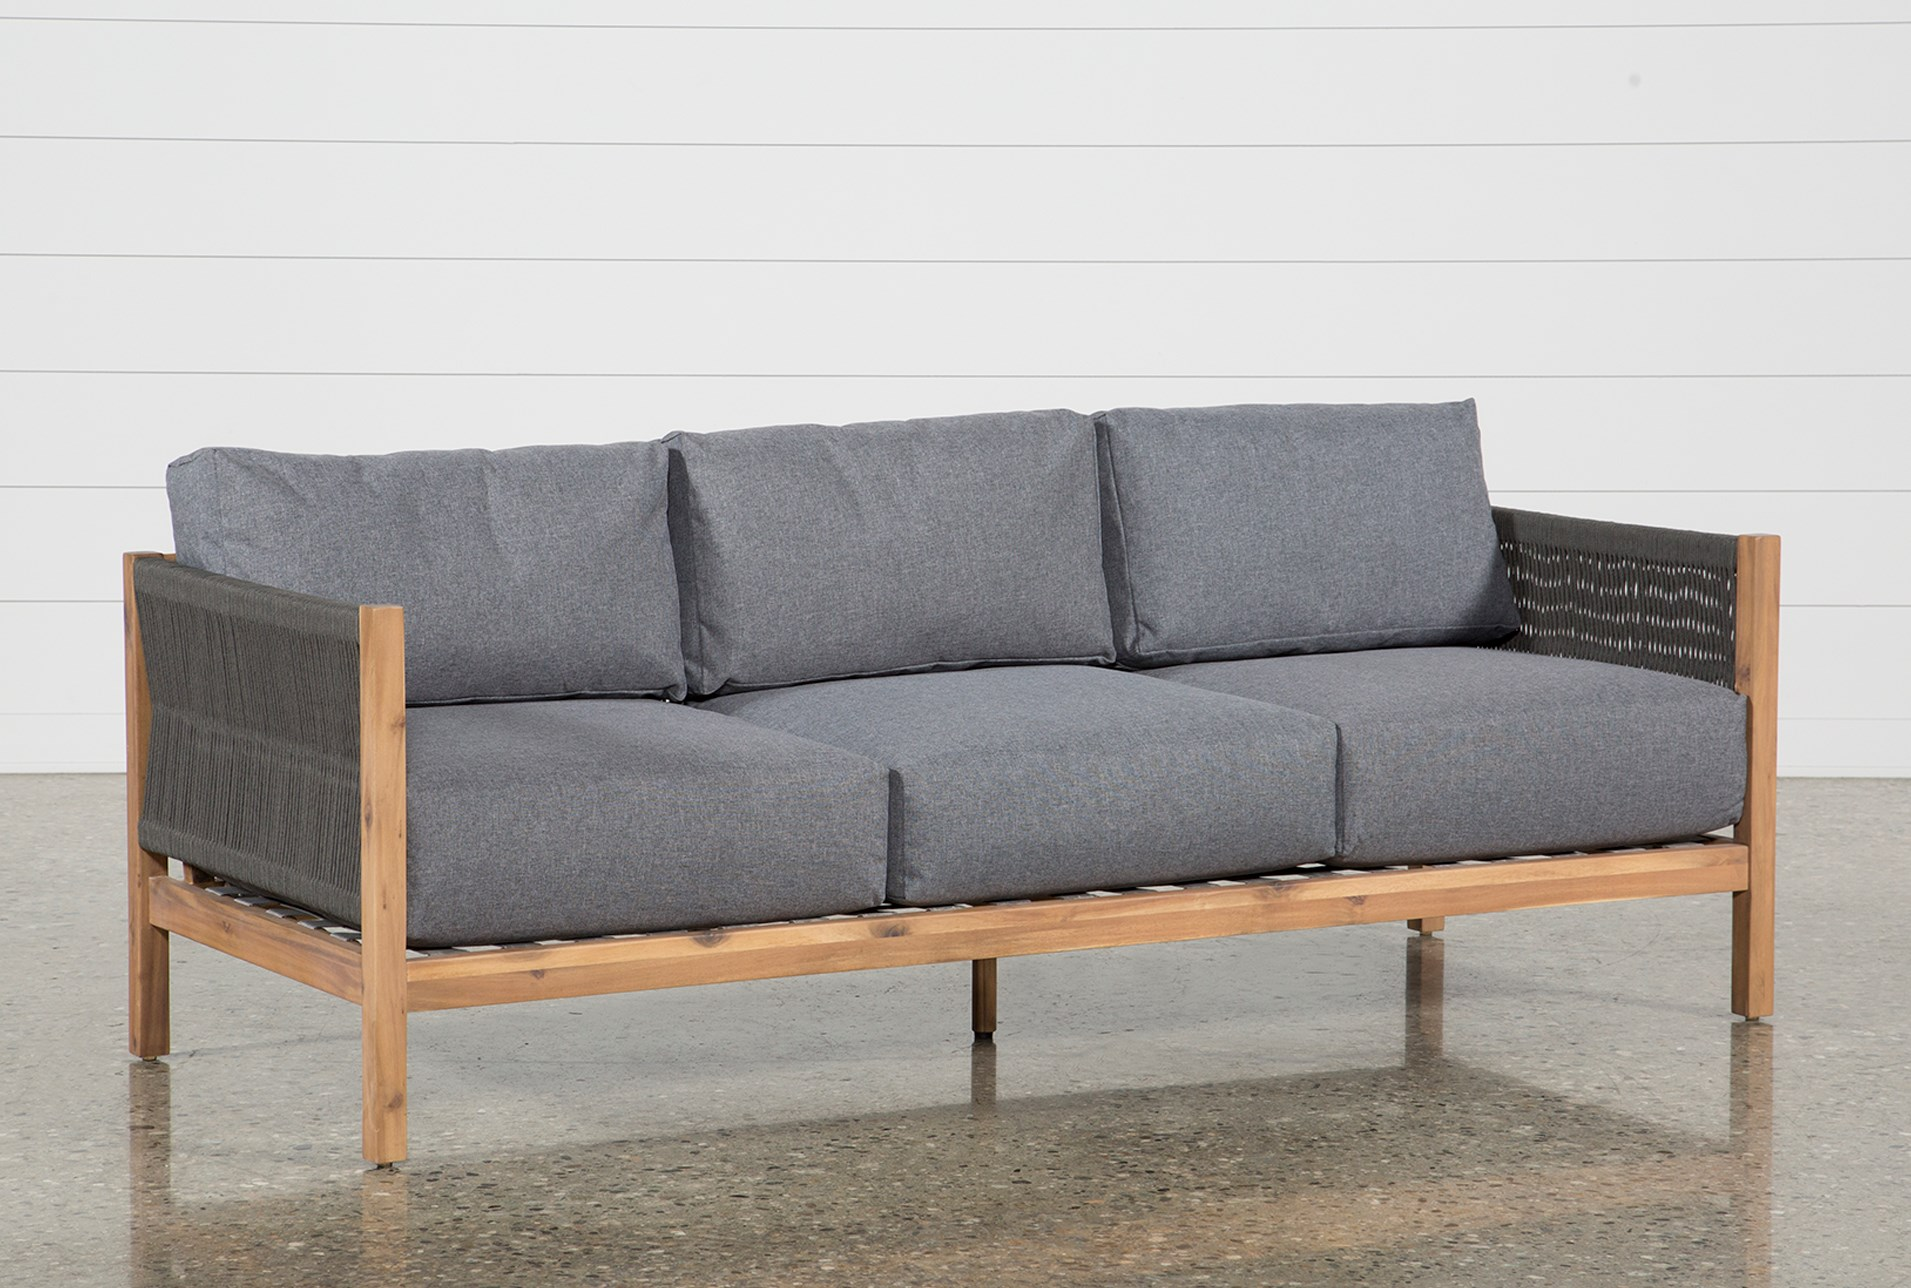 Outdoor sienna sofa qty 1 has been successfully added to your cart